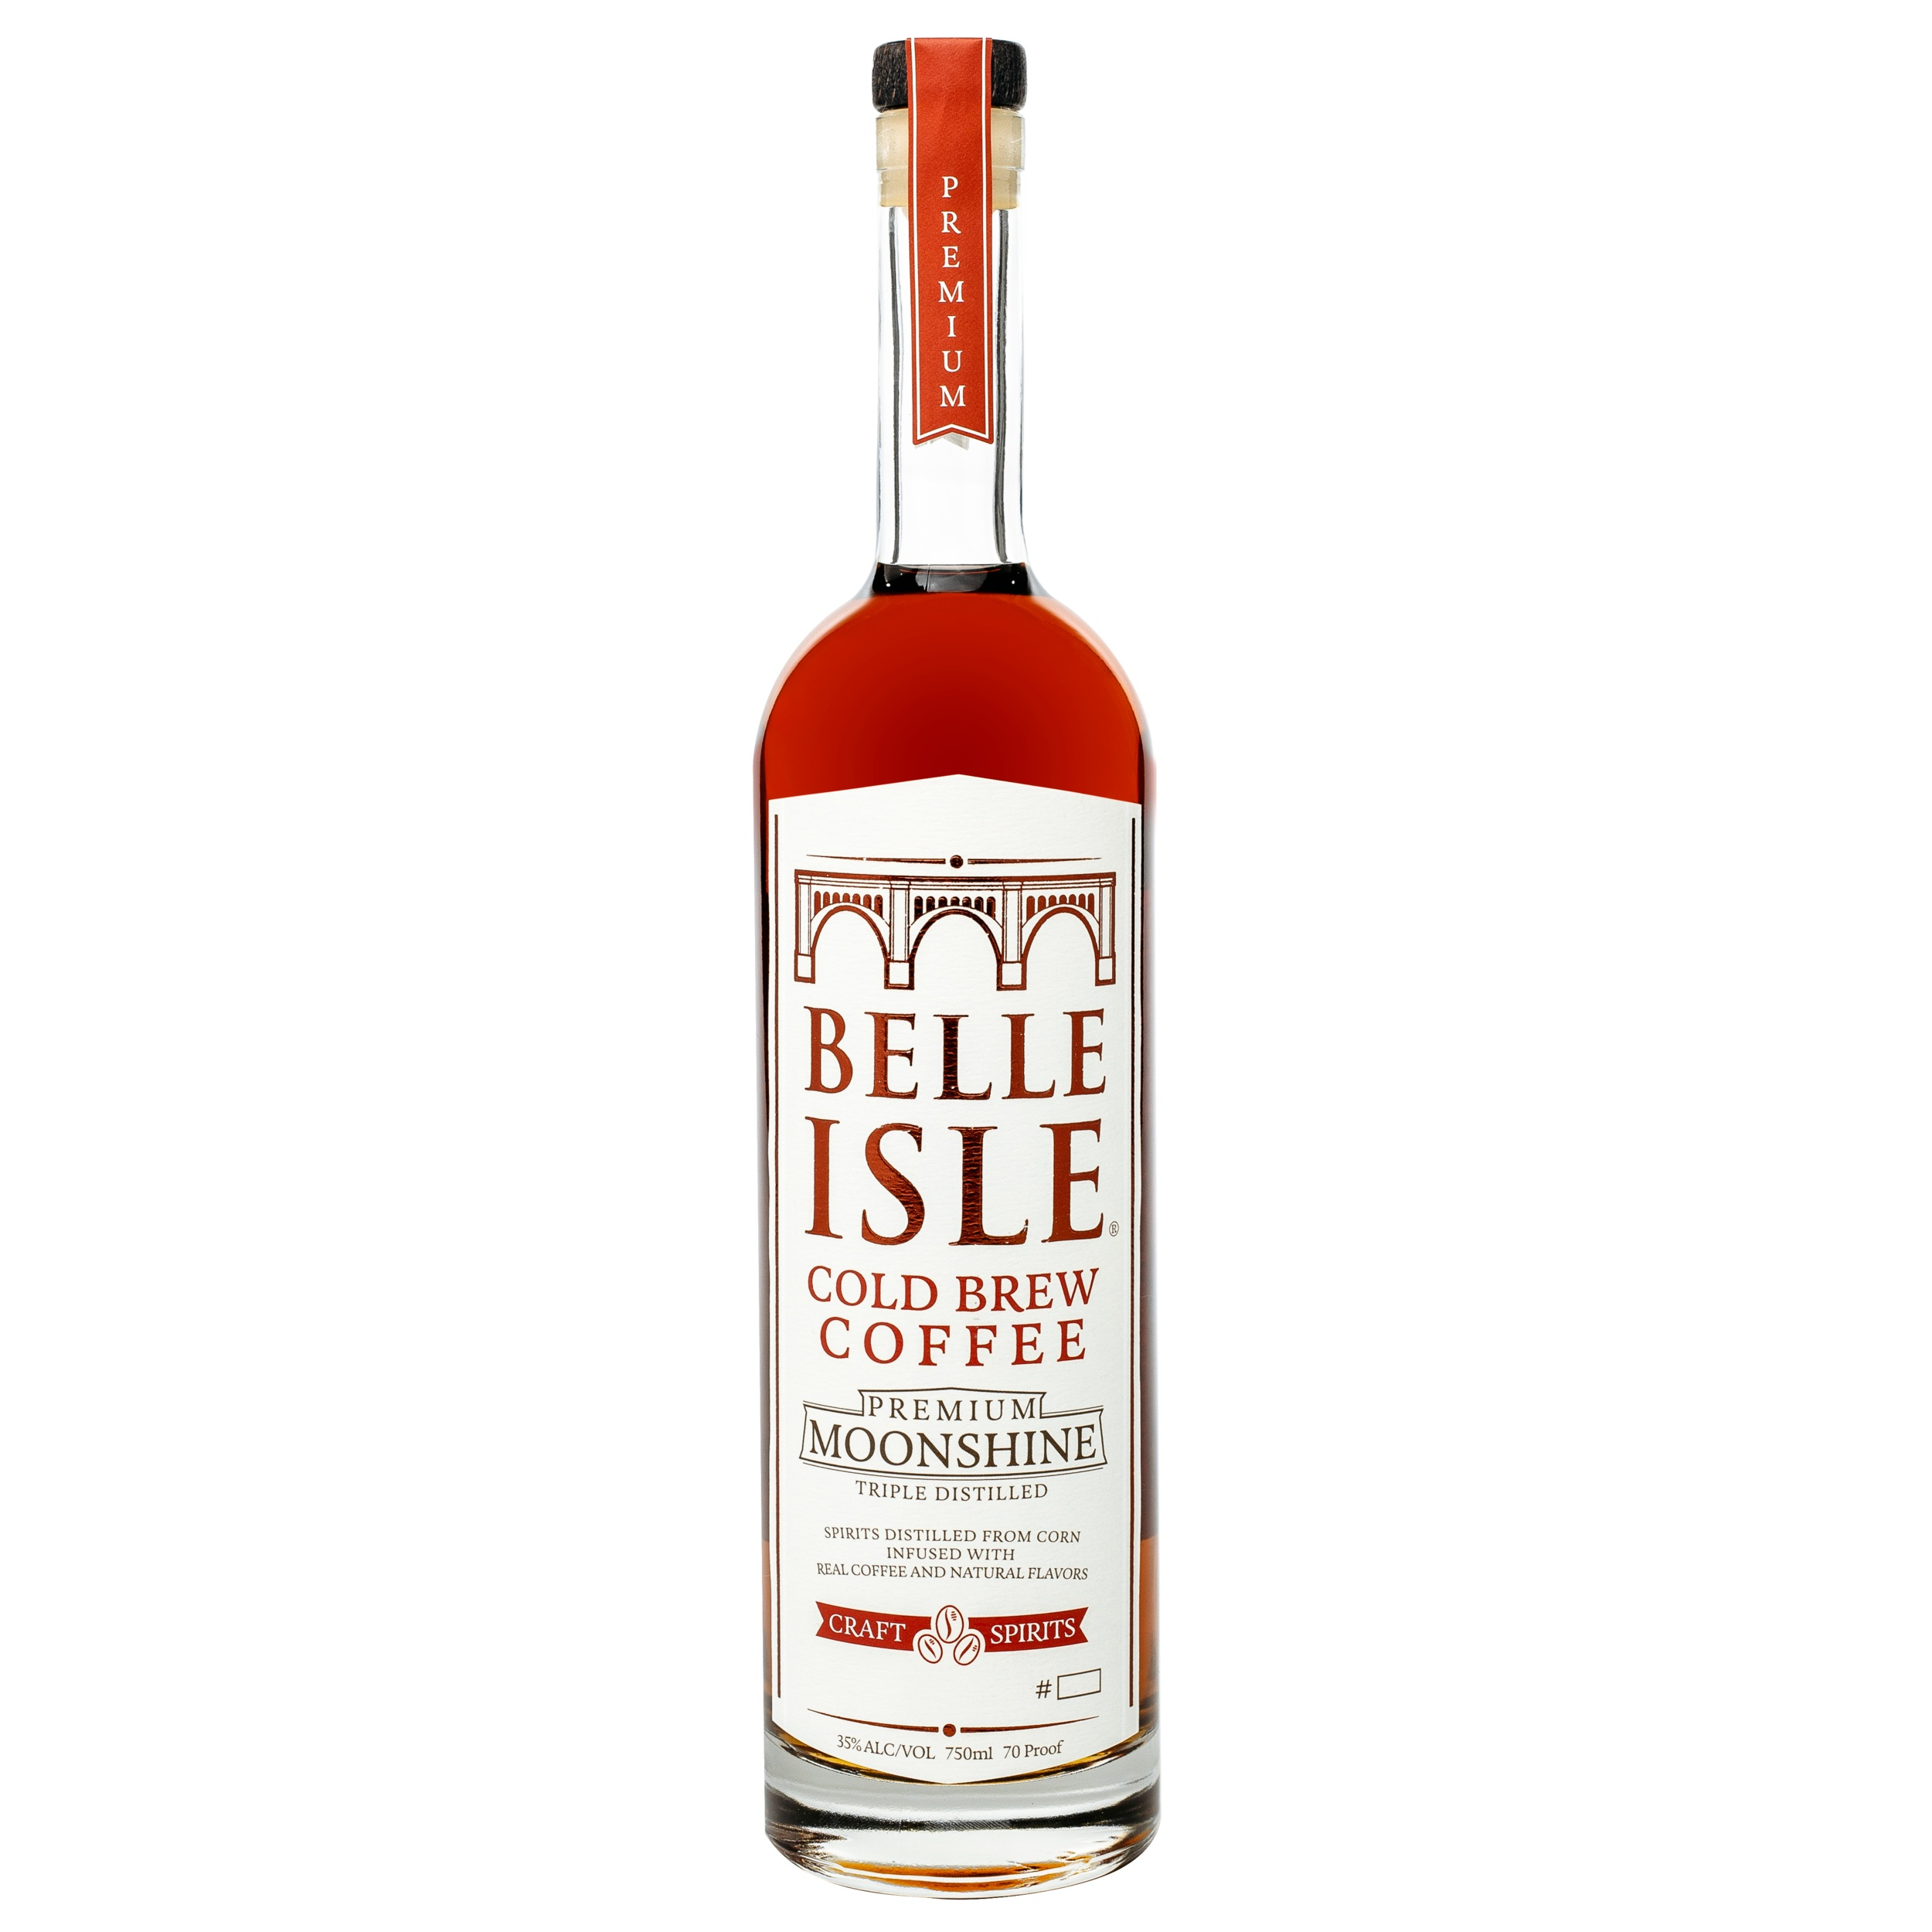 Belle+Isle+Bottle+Shot+-+Cold+Brew+Coffee.jpg